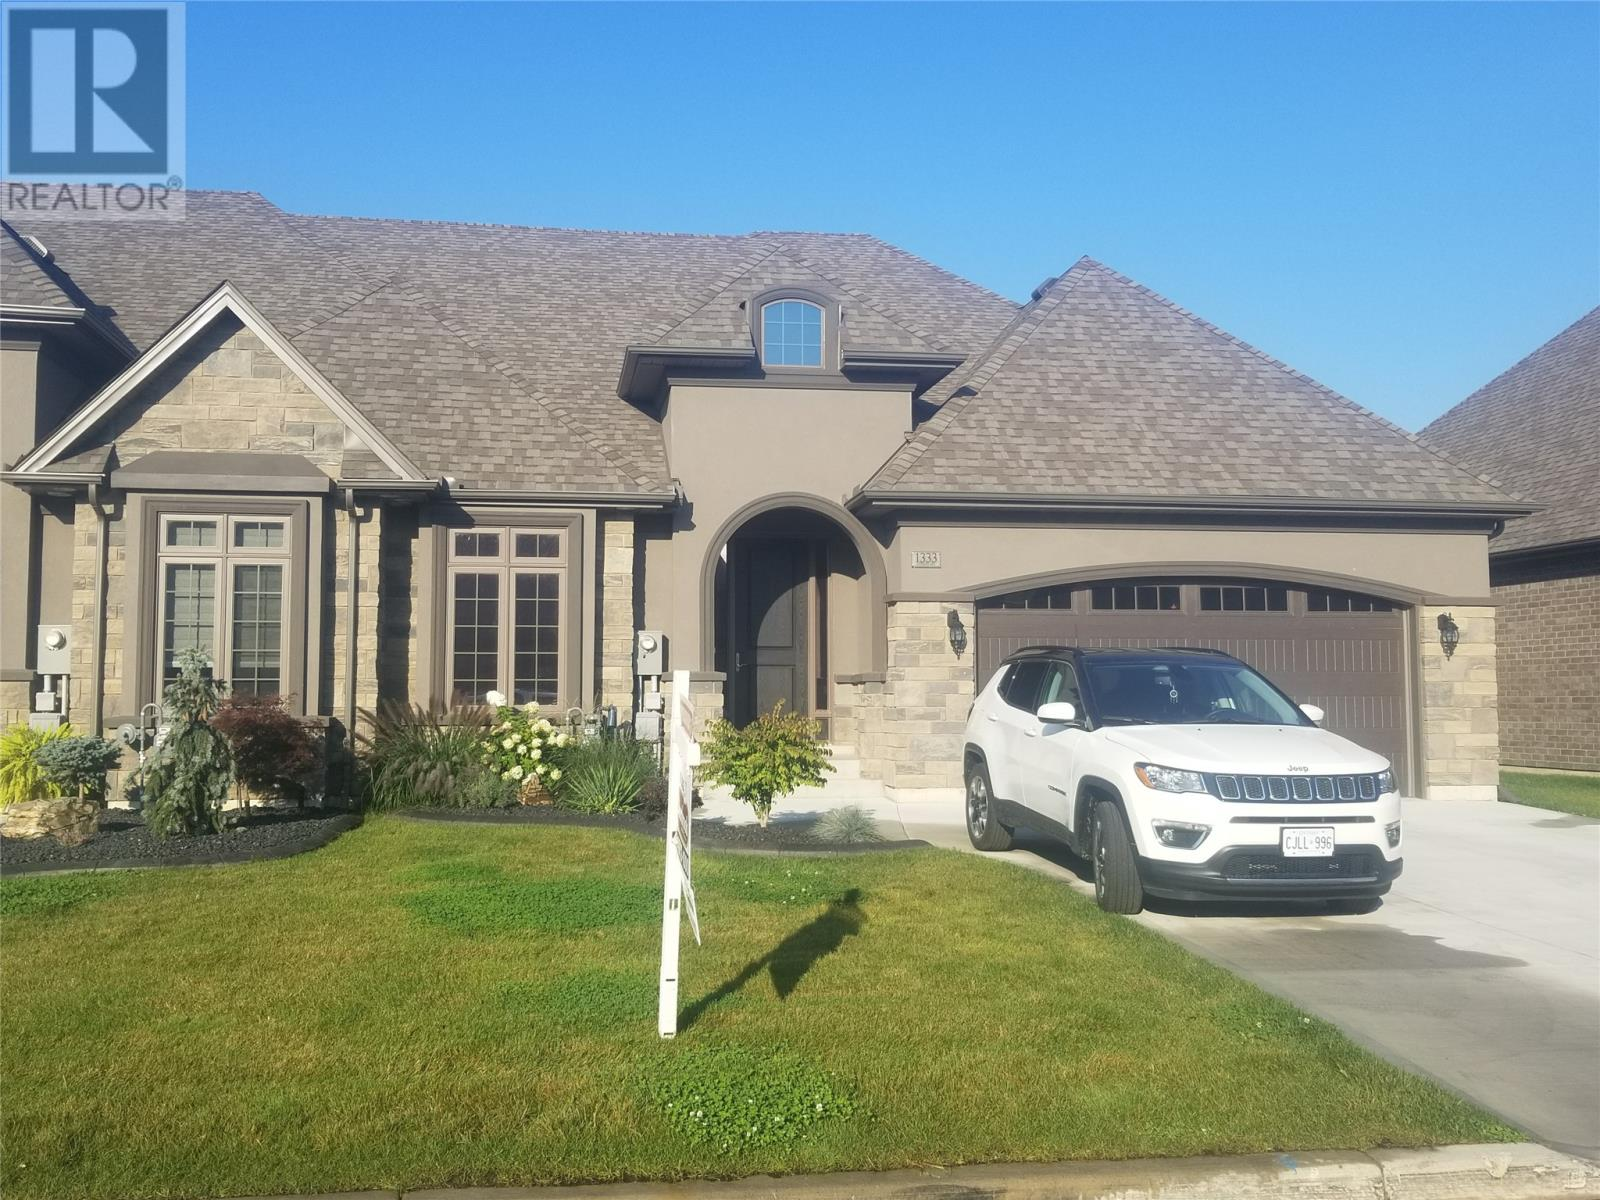 Removed: 1333 Cypress, Windsor, ON - Removed on 2019-09-20 05:45:15